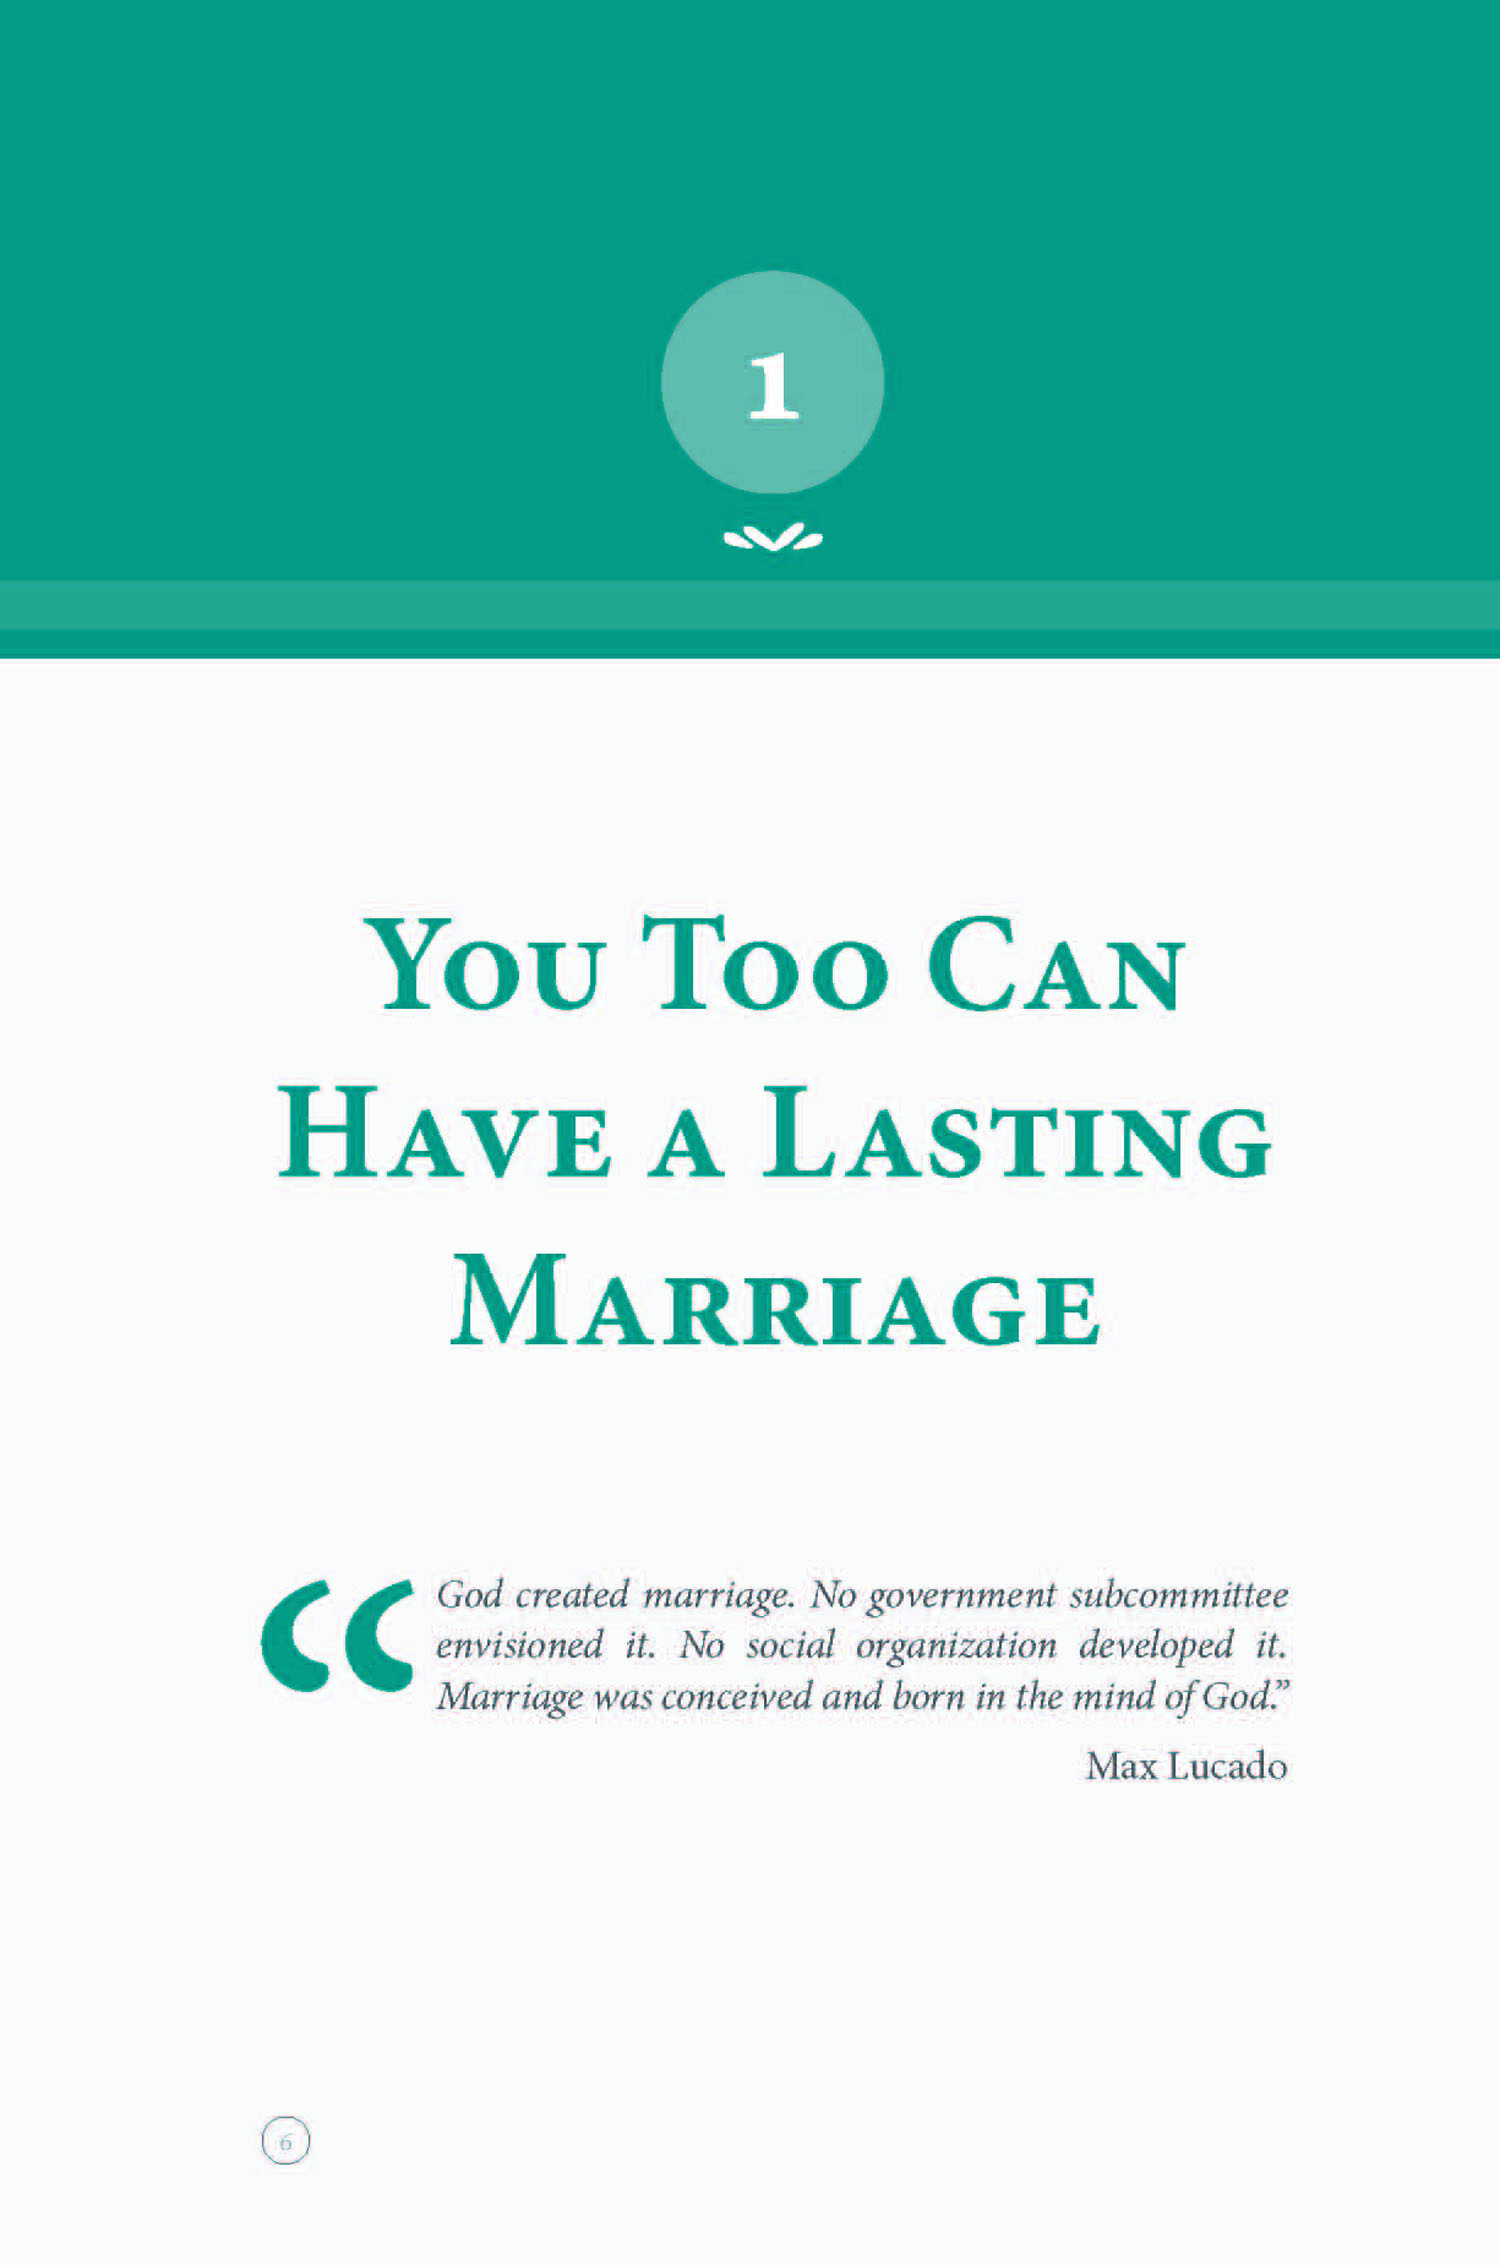 print_last_marriage_Page_006